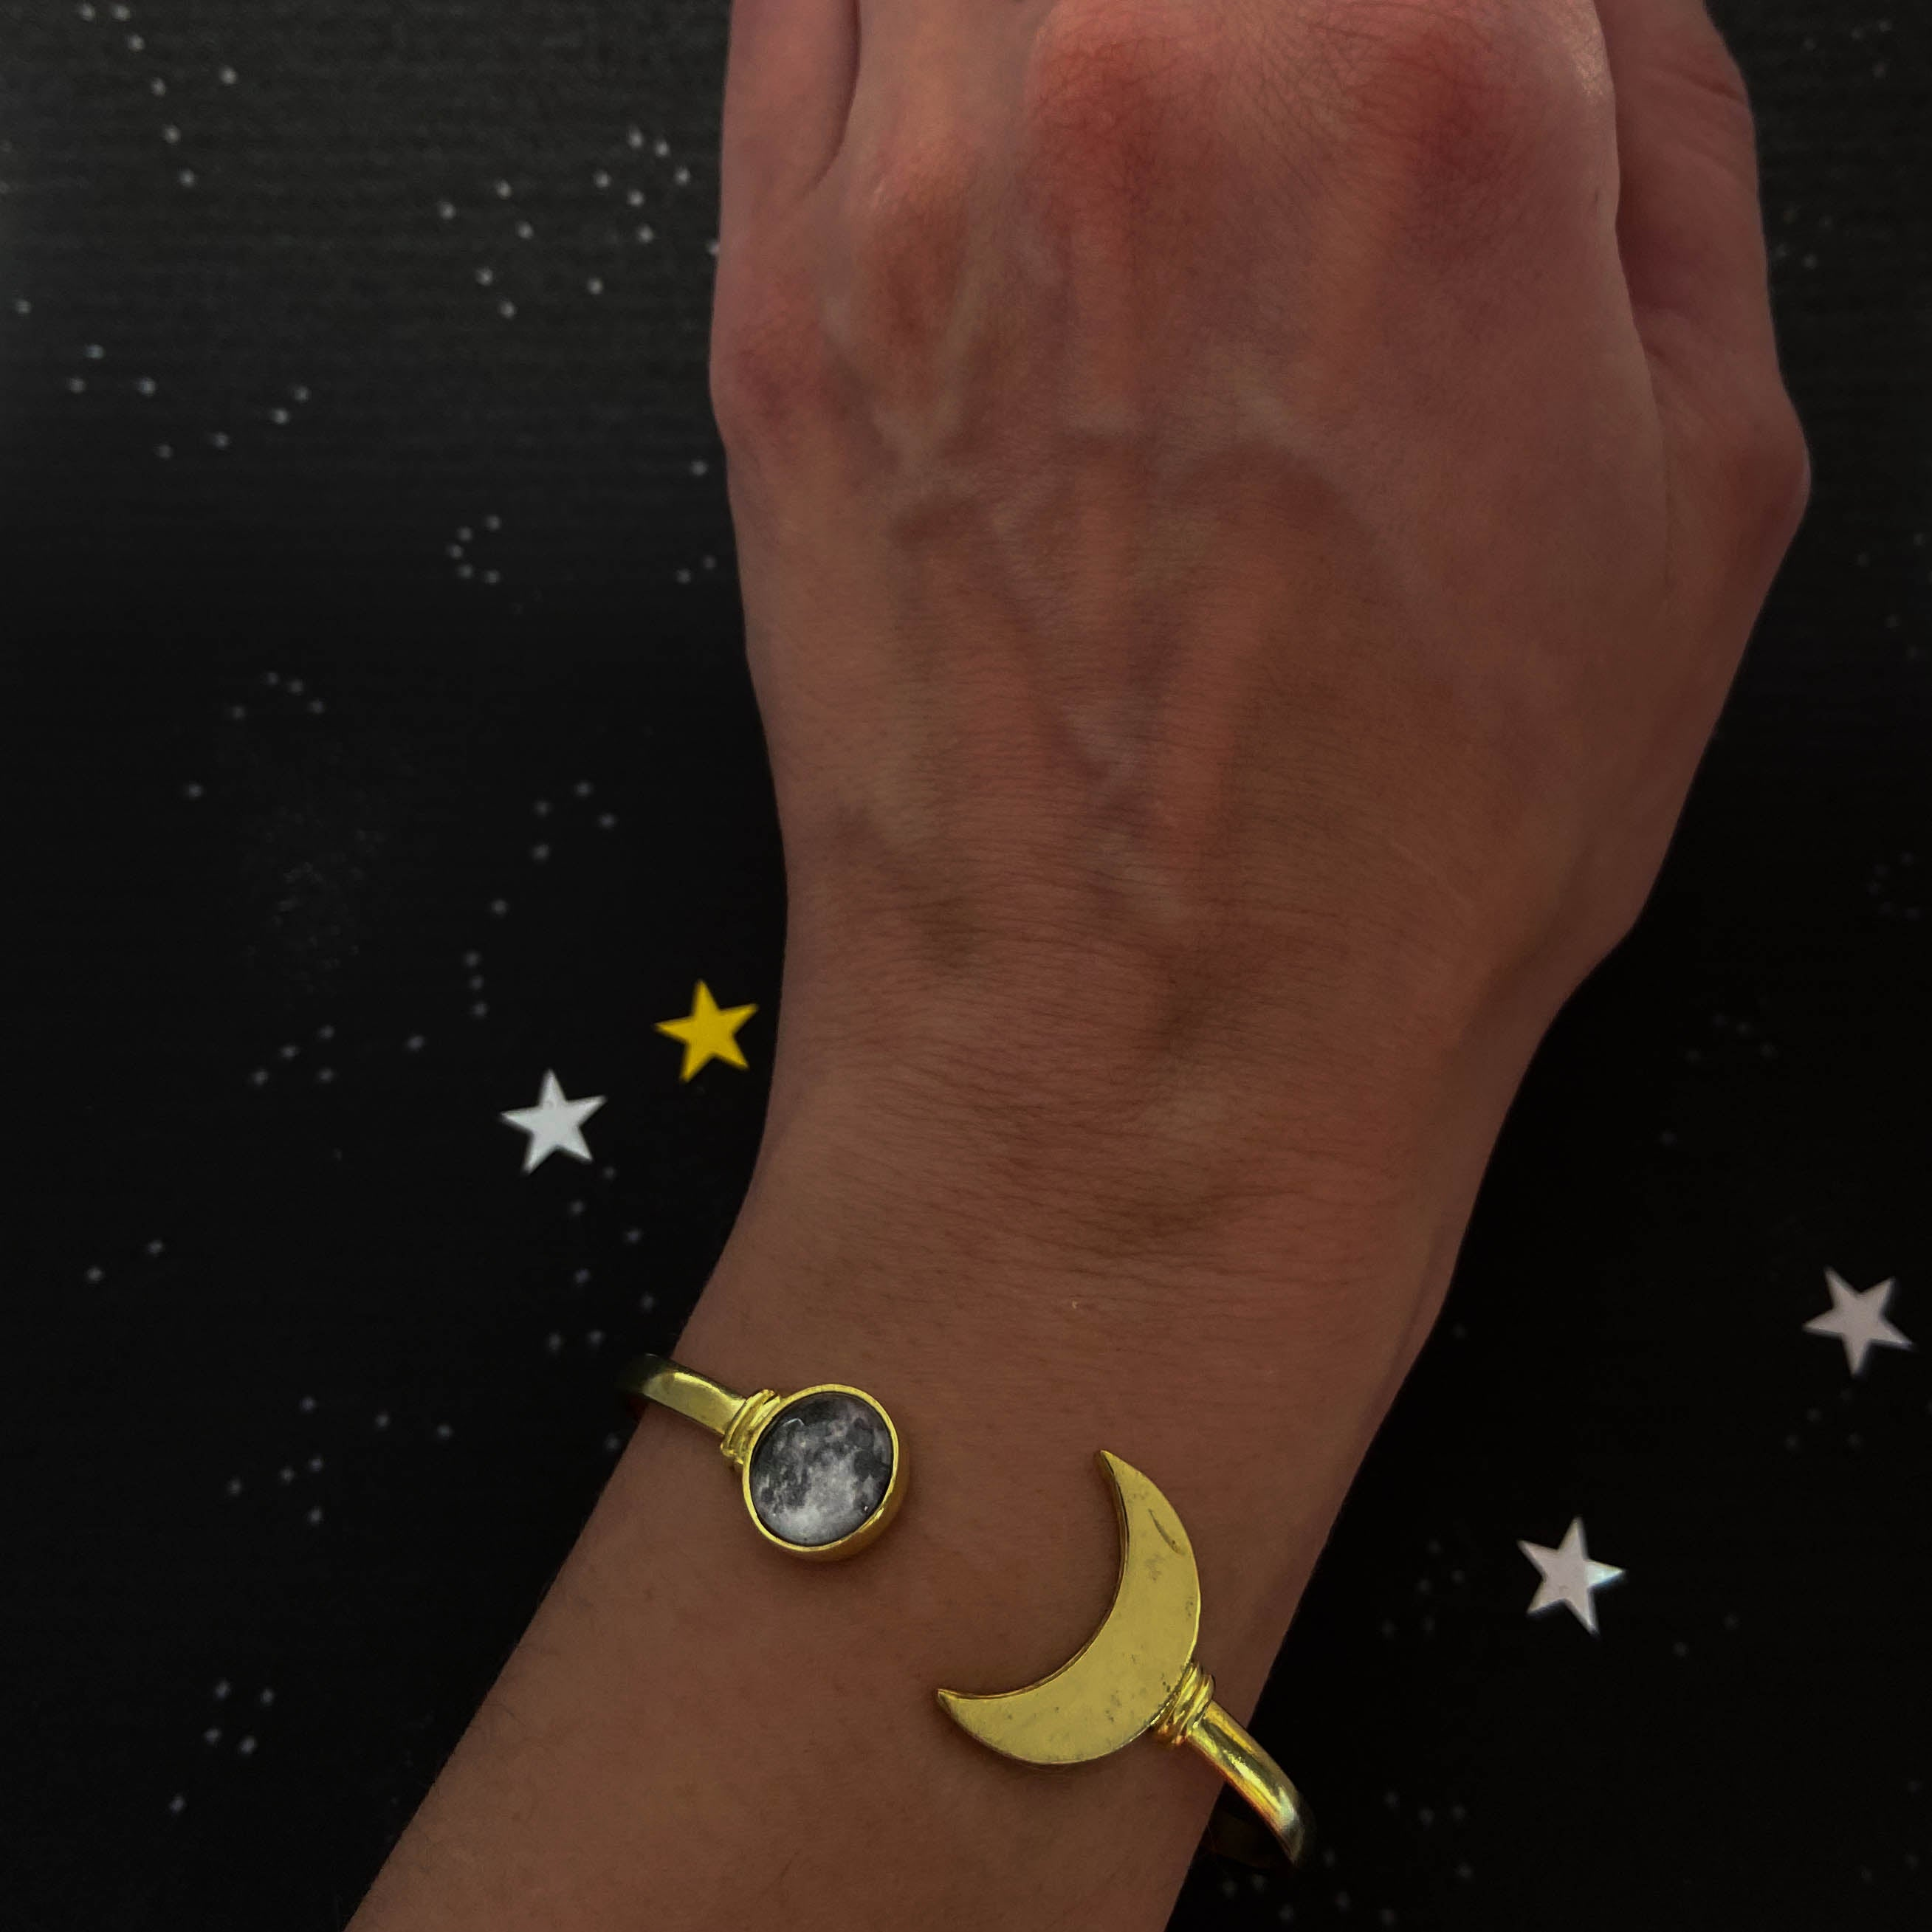 My Moon Cuff Bracelet with Lunar Crescent - Gold or Silver Tone